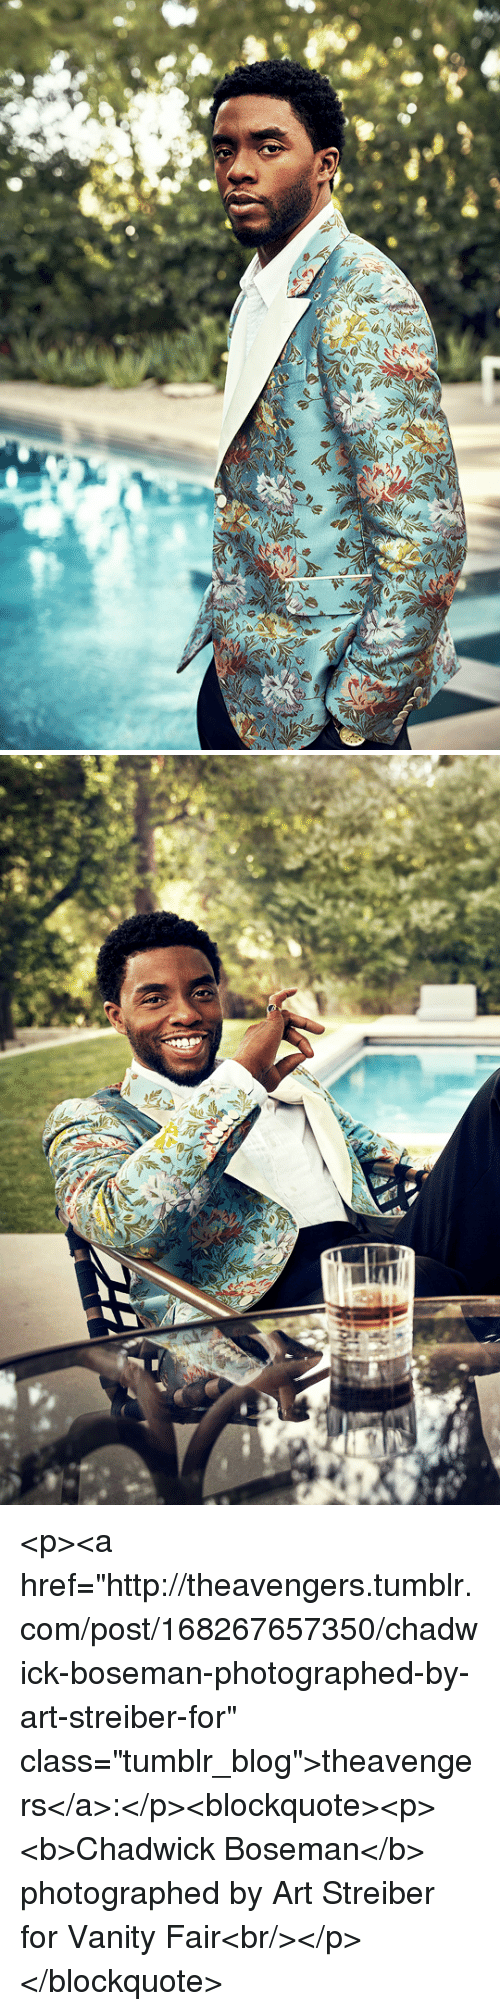 "Vanity: <p><a href=""http://theavengers.tumblr.com/post/168267657350/chadwick-boseman-photographed-by-art-streiber-for"" class=""tumblr_blog"">theavengers</a>:</p><blockquote><p><b>Chadwick Boseman</b> photographed by Art Streiber for Vanity Fair<br/></p></blockquote>"